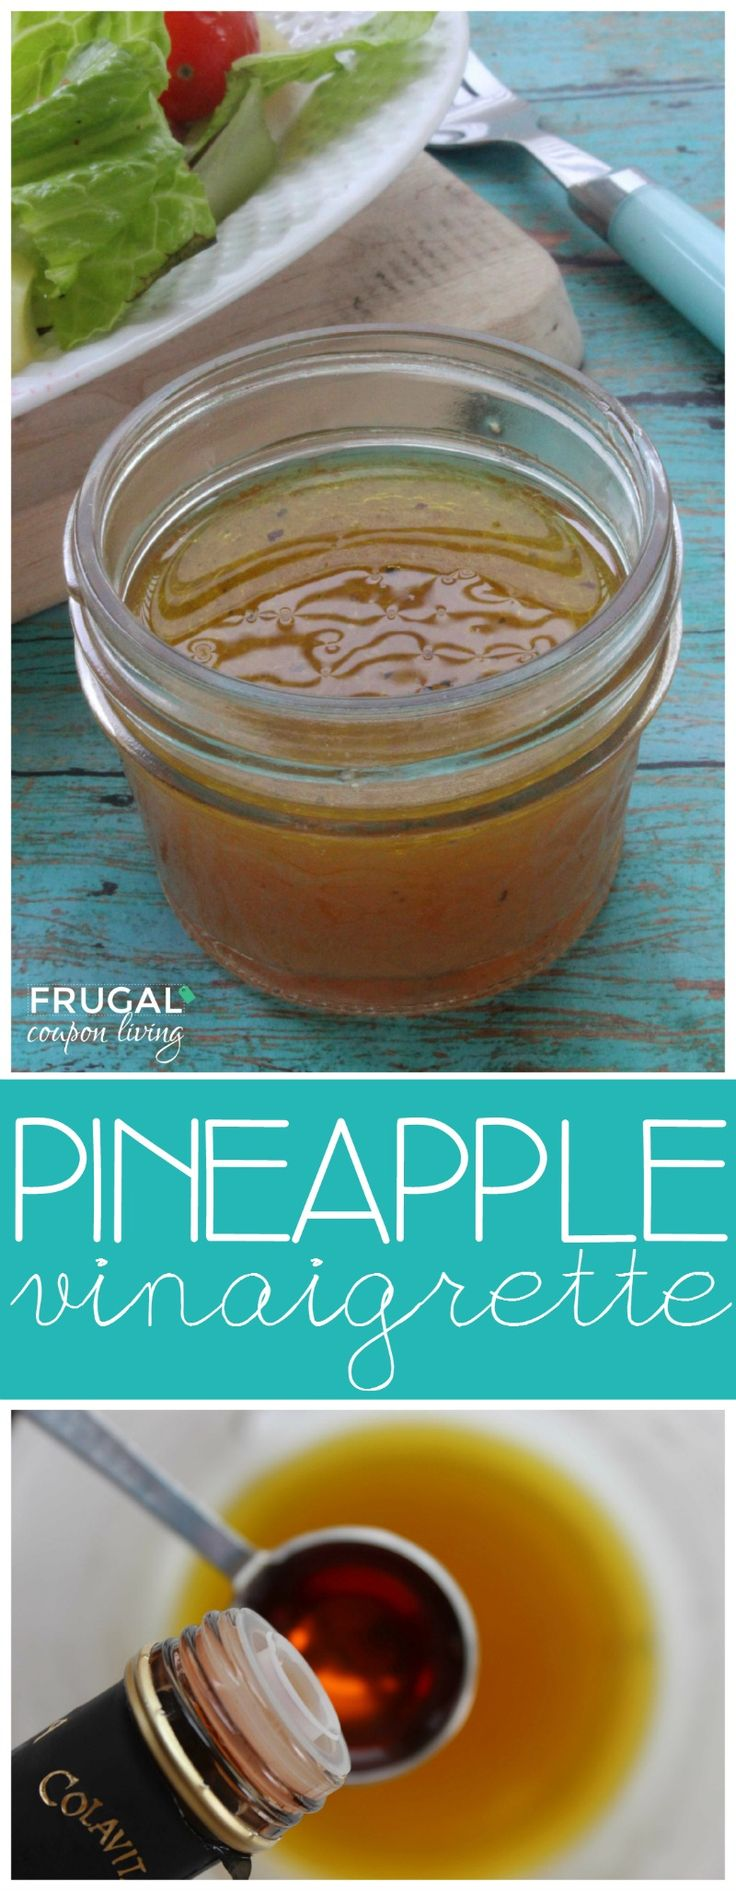 pineapple-vinaigrette-long-800-frugal-coupon-living